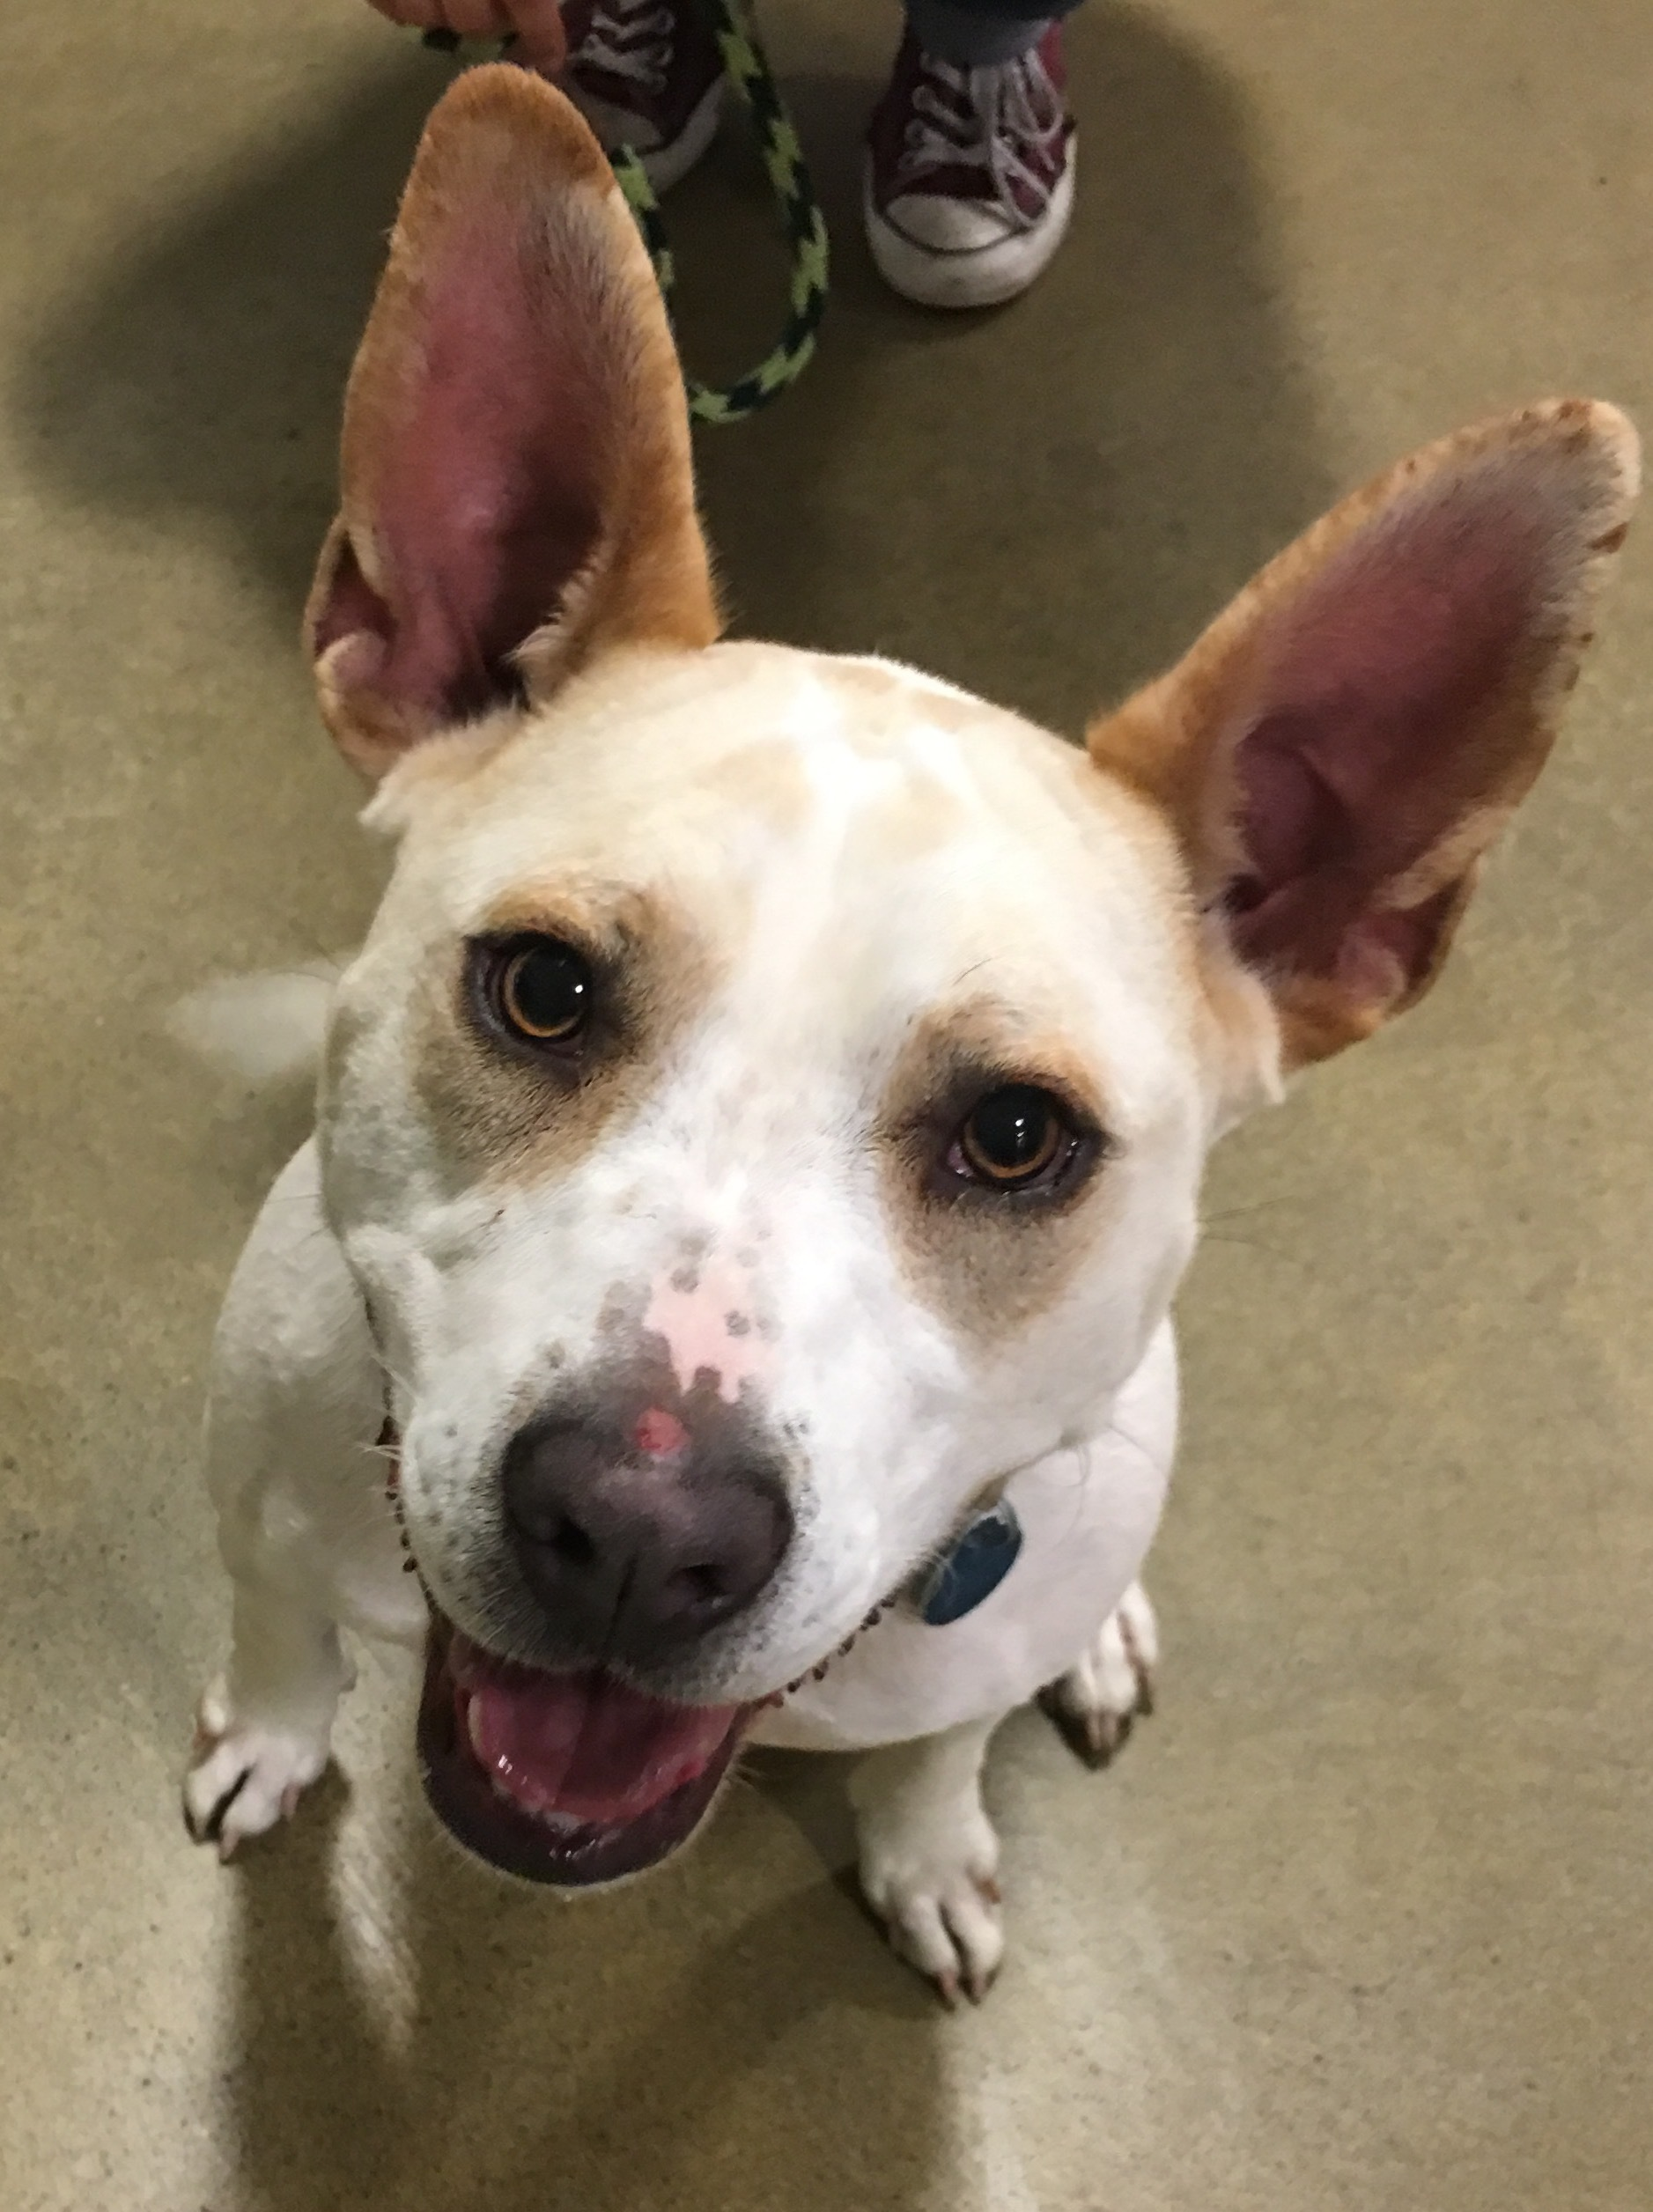 Dog For Adoption Brazella A Cattle Dog Amp Bull Terrier Mix In Tulsa Ok Petfinder